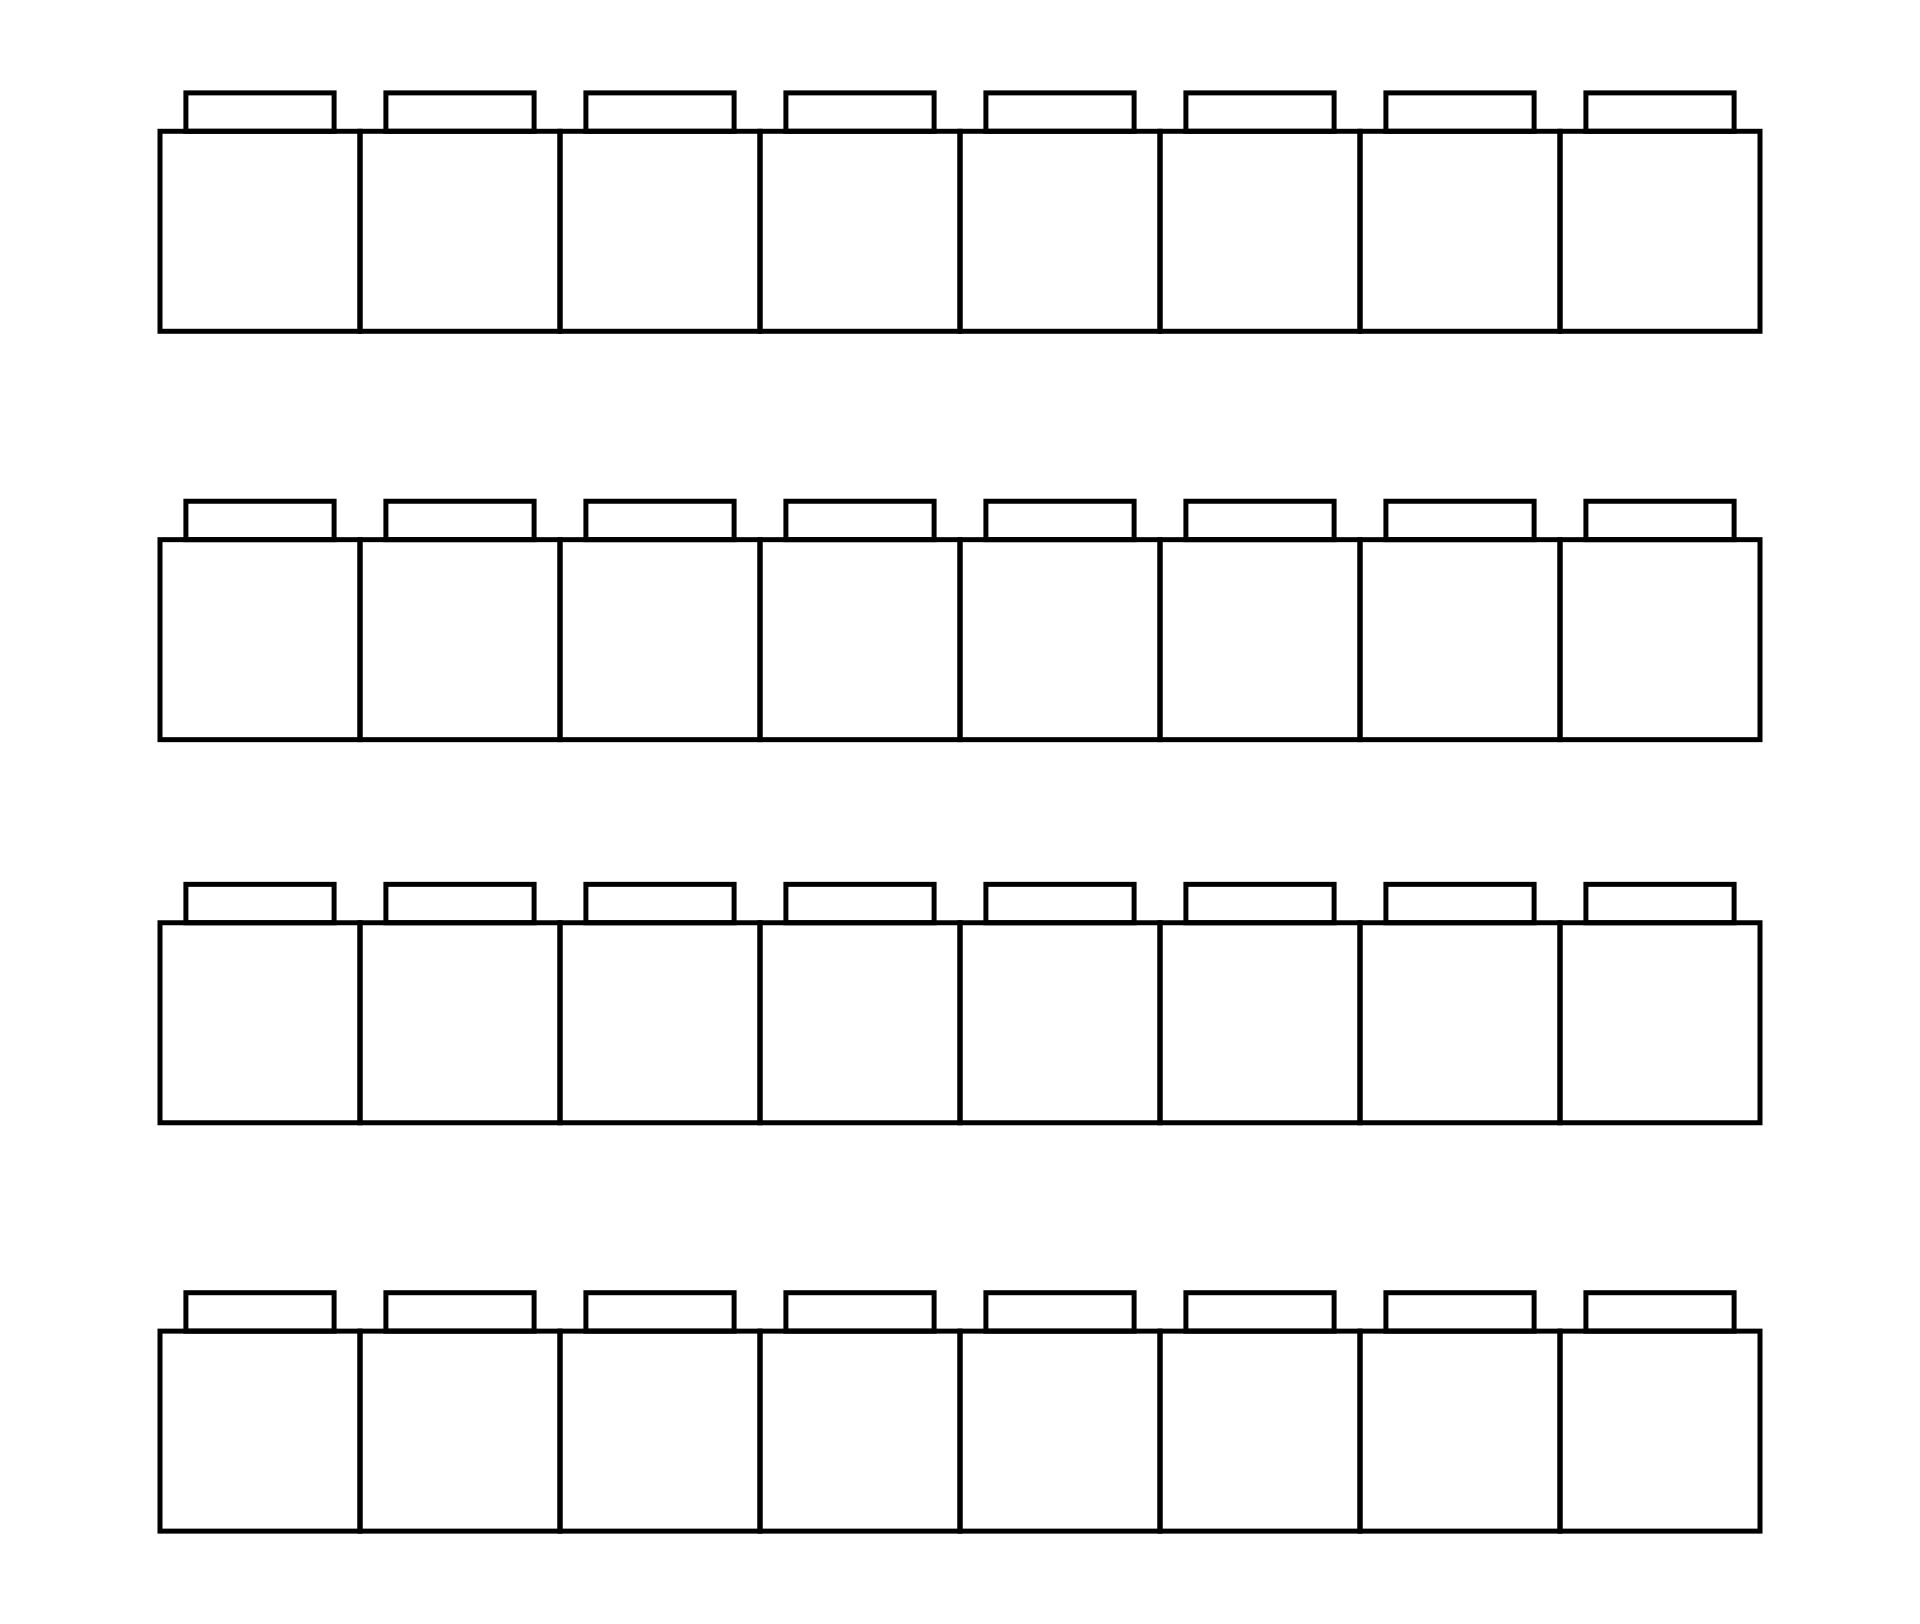 5 Images of Unifix Cube Template Printable